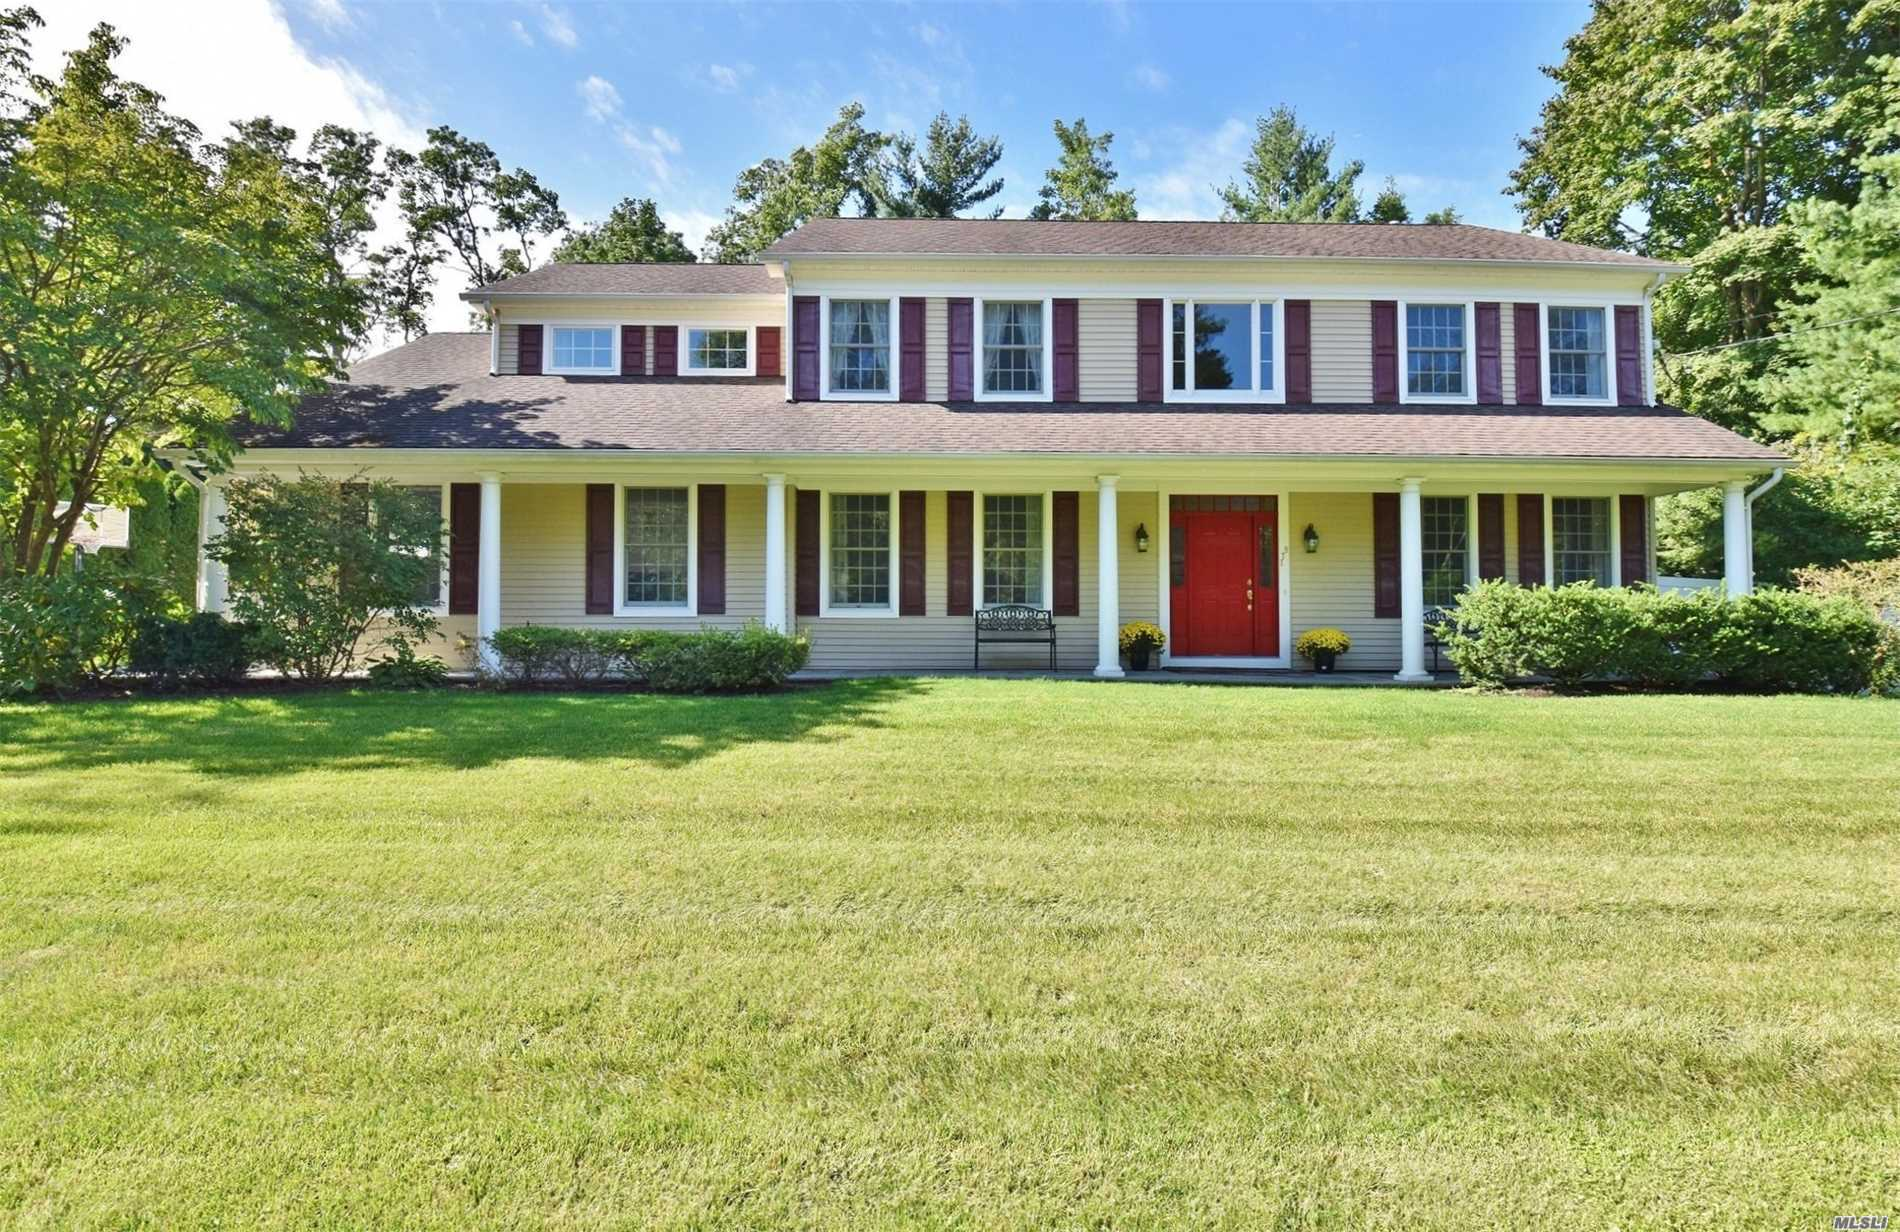 Immaculate Center Hall Colonial With Impressive Two Story Entry Foyer, Incredible Millwork Includes Raised Panel And Crown Moldings And Wainscoting. Interior French Doors With Custom Transom Windows. Hardwood Floors Throughout. Cherry Kitchen With Stainless/Granite And Large Center Island. Master Suite With 2 Wic's, Master Bath With Radiant Heated Floors. Finished Basement; Professionally Landscaped Backyard With Heated, Saltwater In-Ground Pool, Cambridge Paver Patio. Whole House Generator.